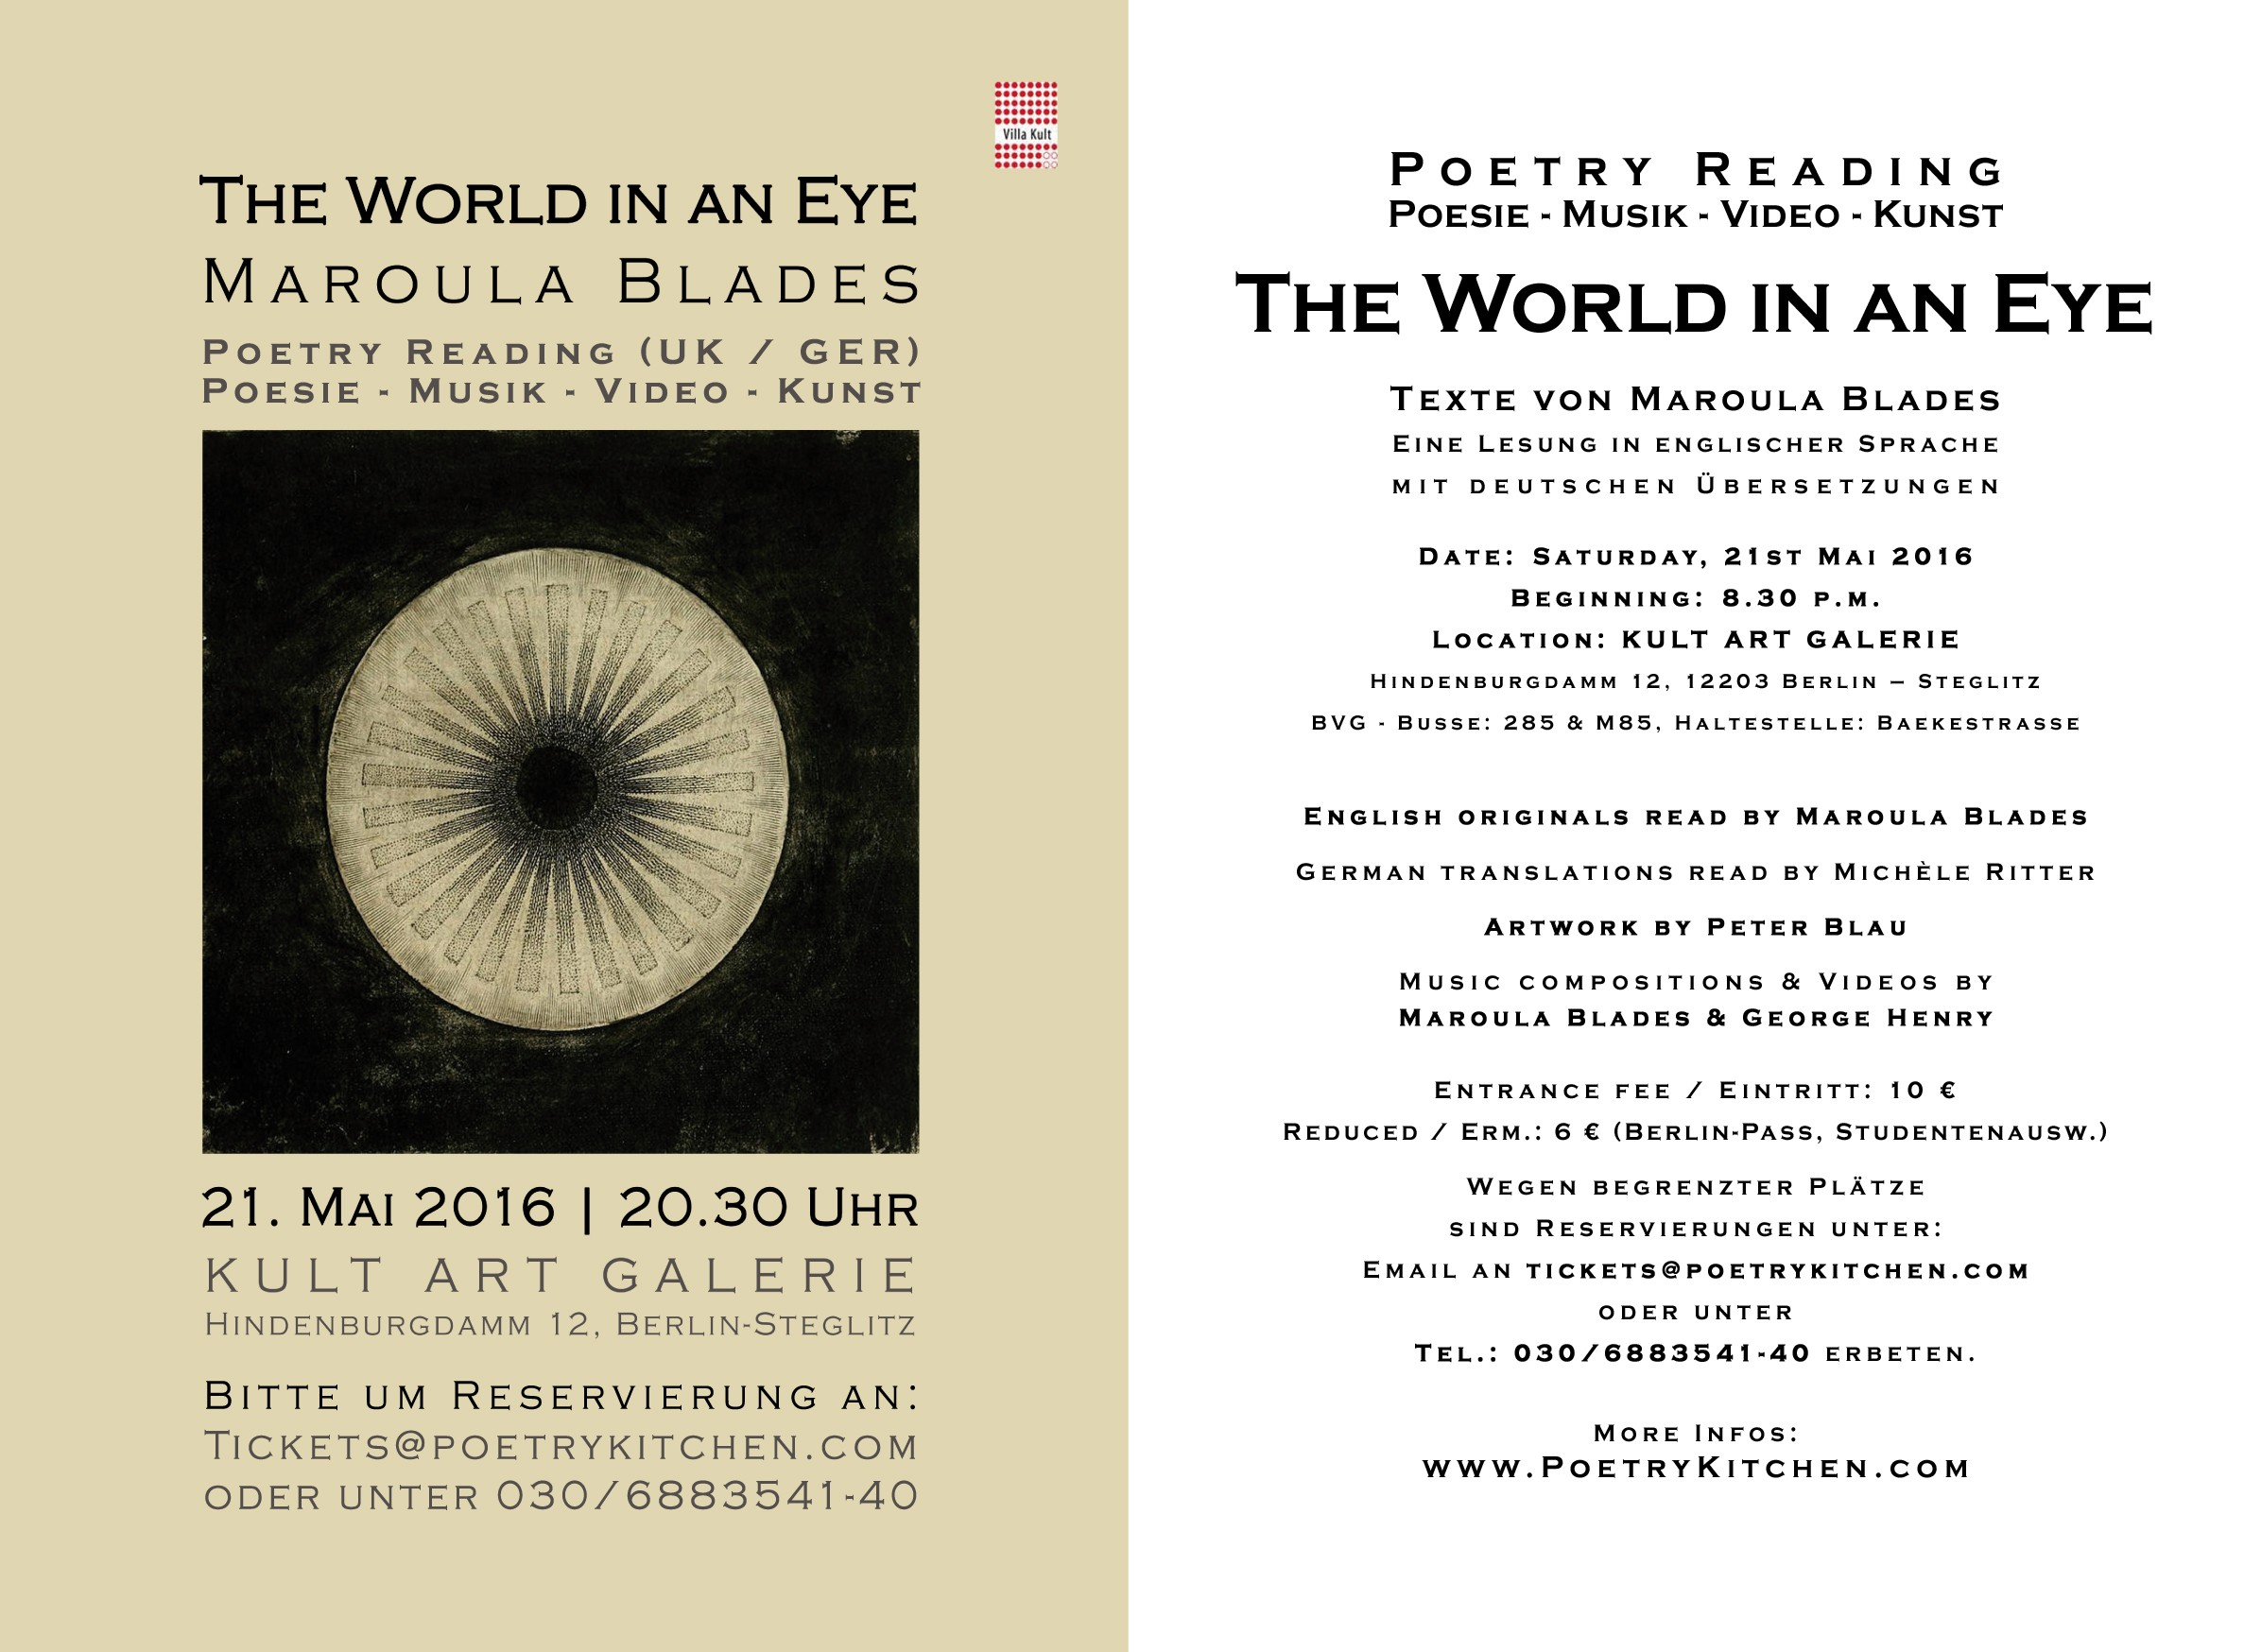 email flyer - Maroula Blades - THE WORLD IN AN EYE